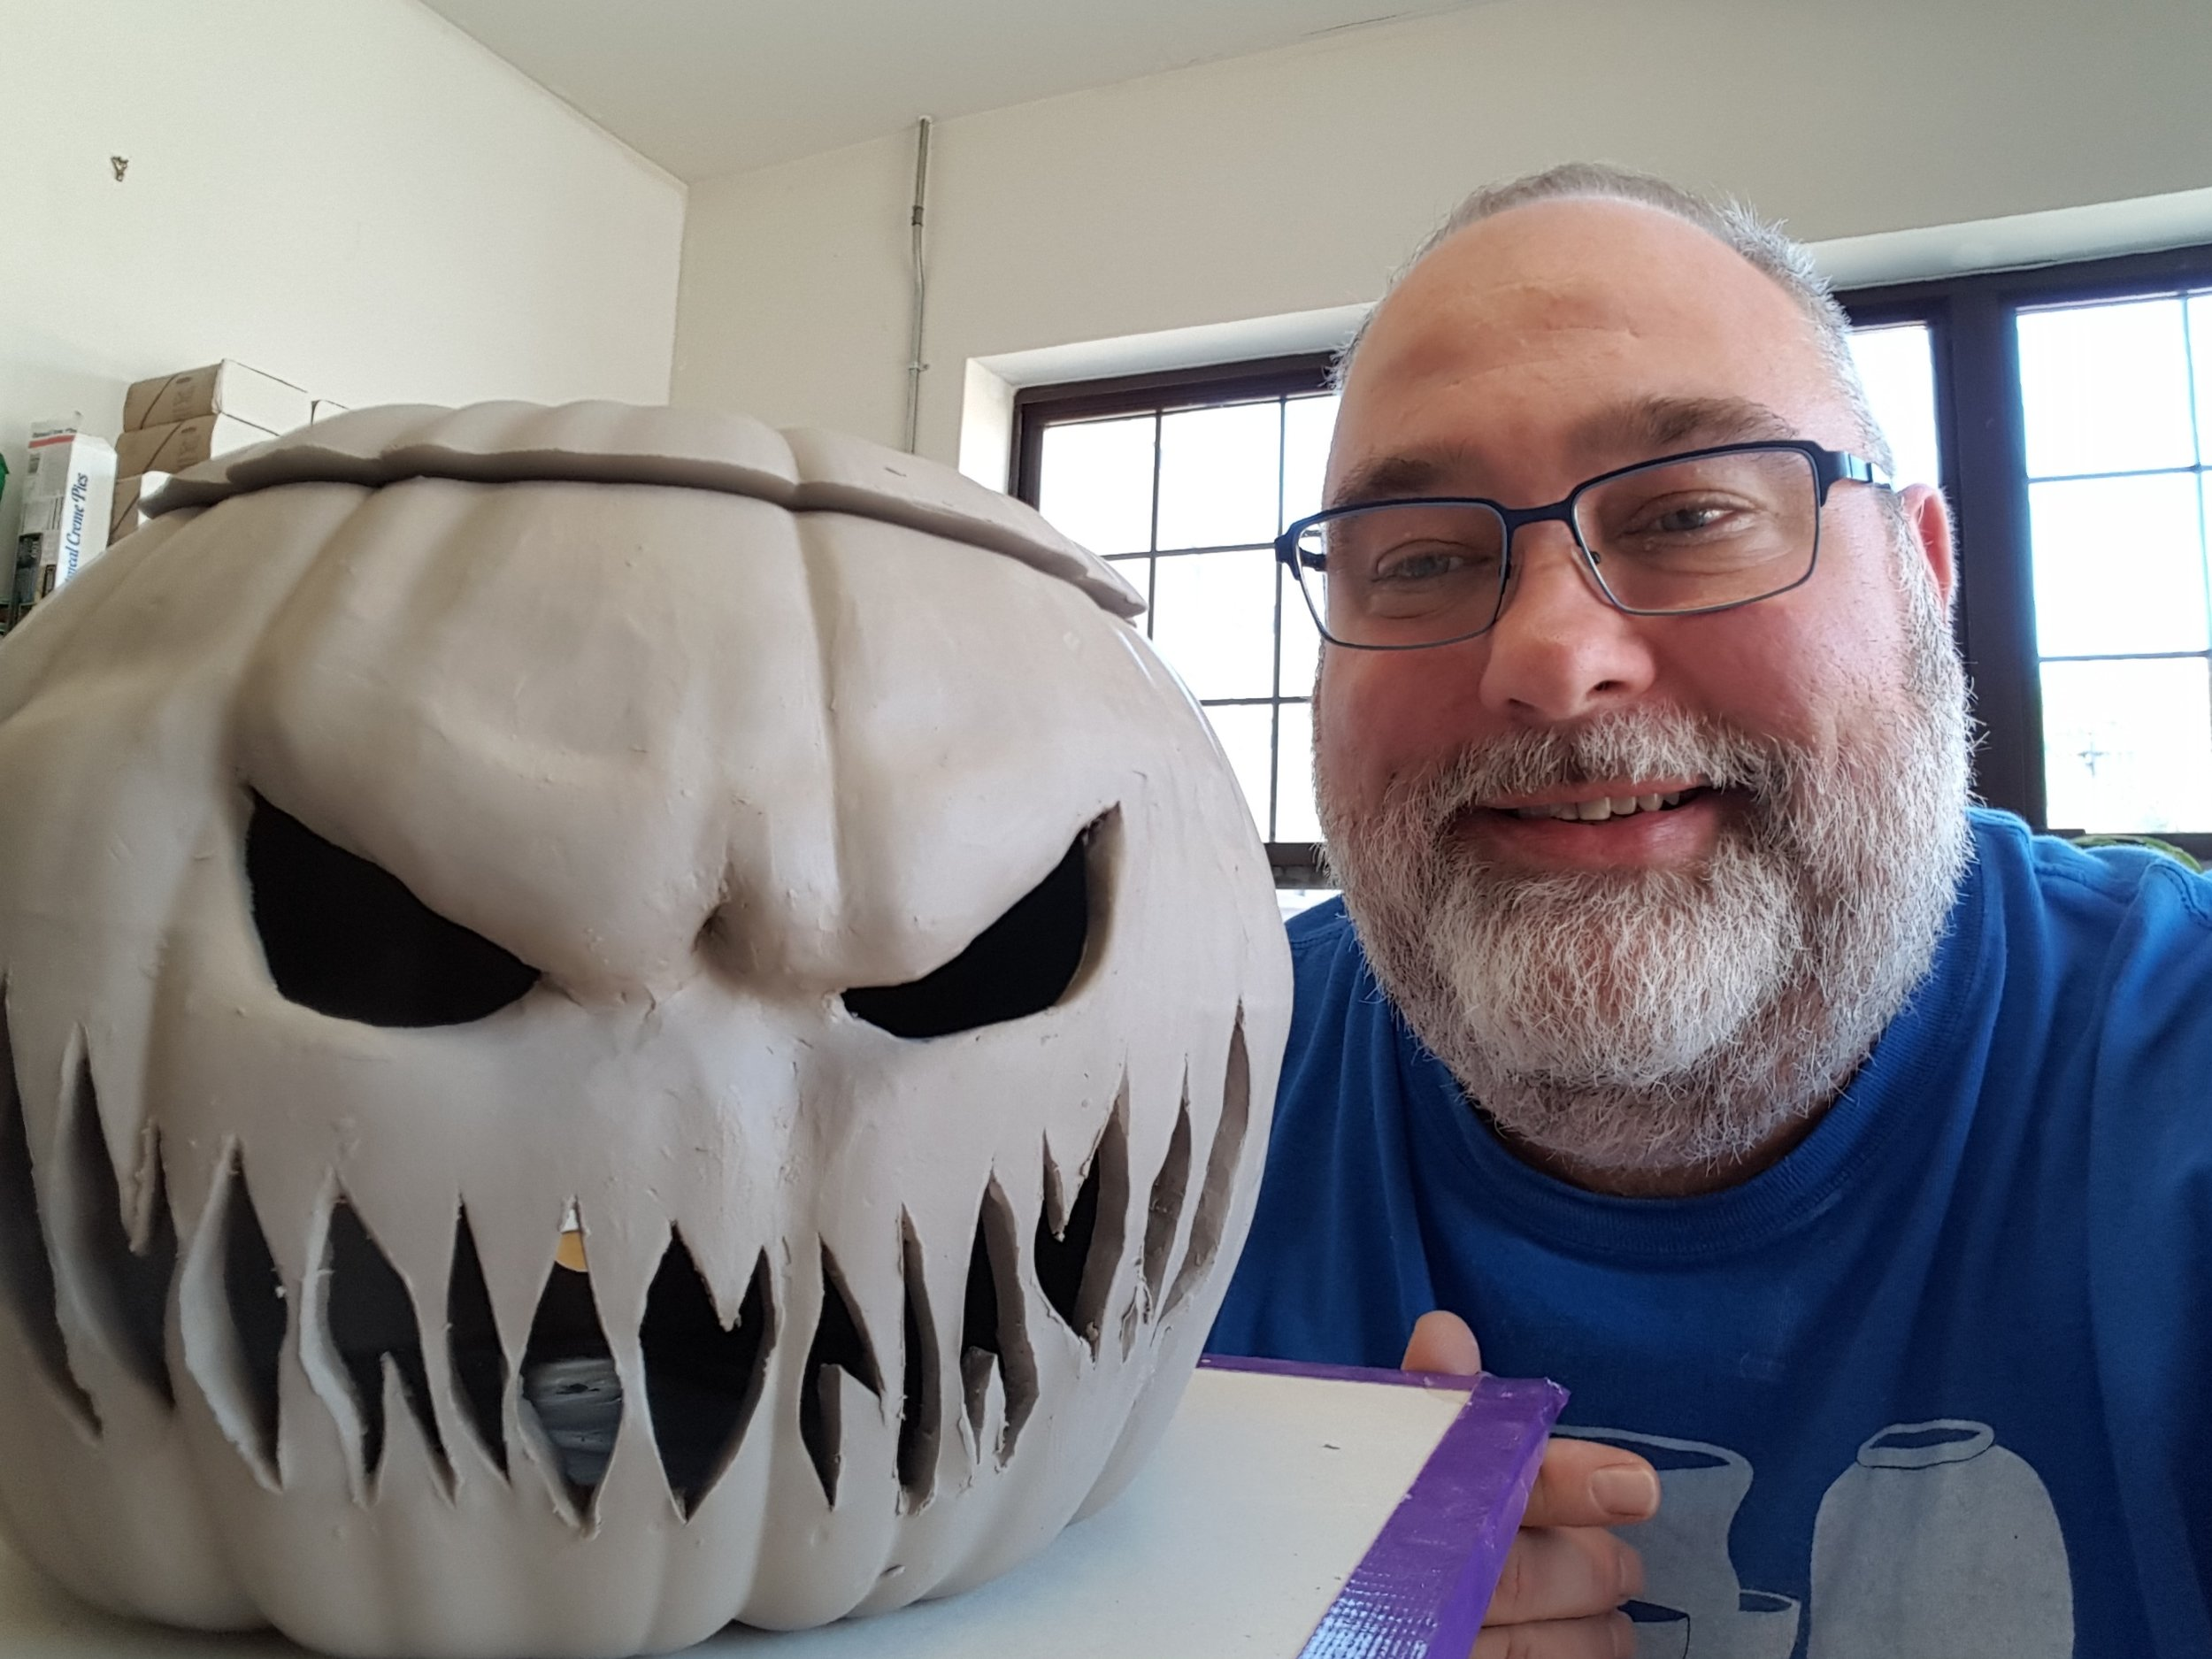 This is a plain pumpkin plaster mold. Liquid clay is poured into the mold to form the pumpkin. Once removed, the brow was formed by pushing out the clay from inside and then cutting out a face